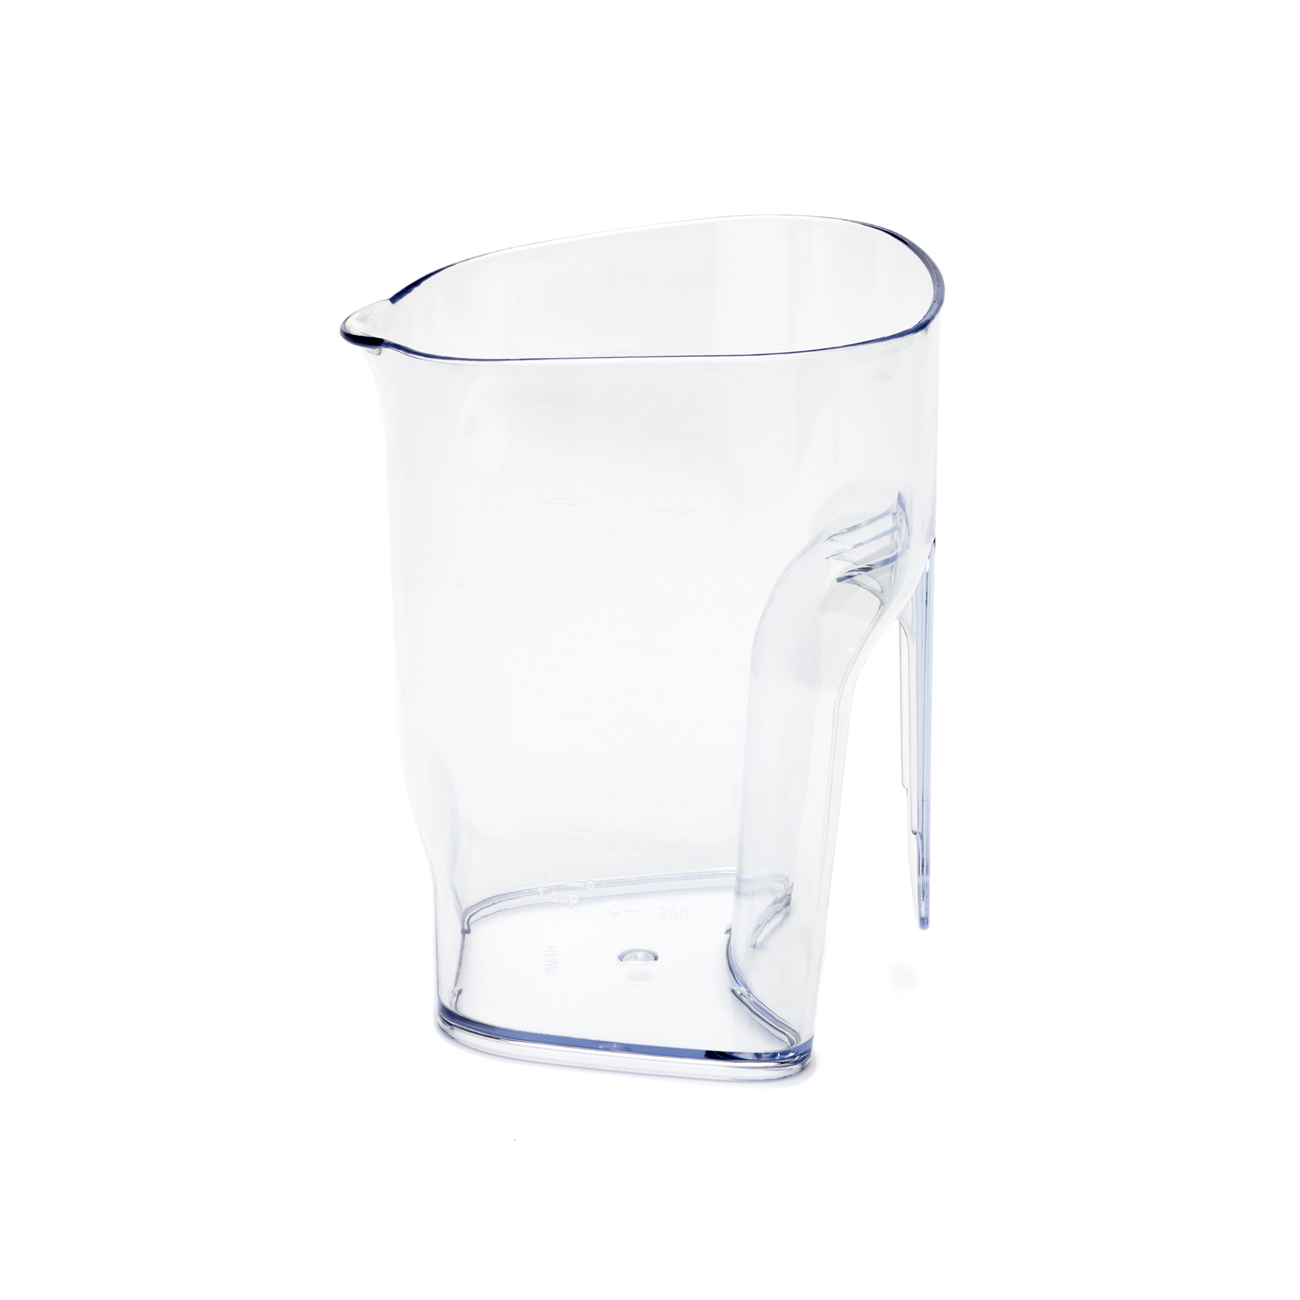 Juicing Jug